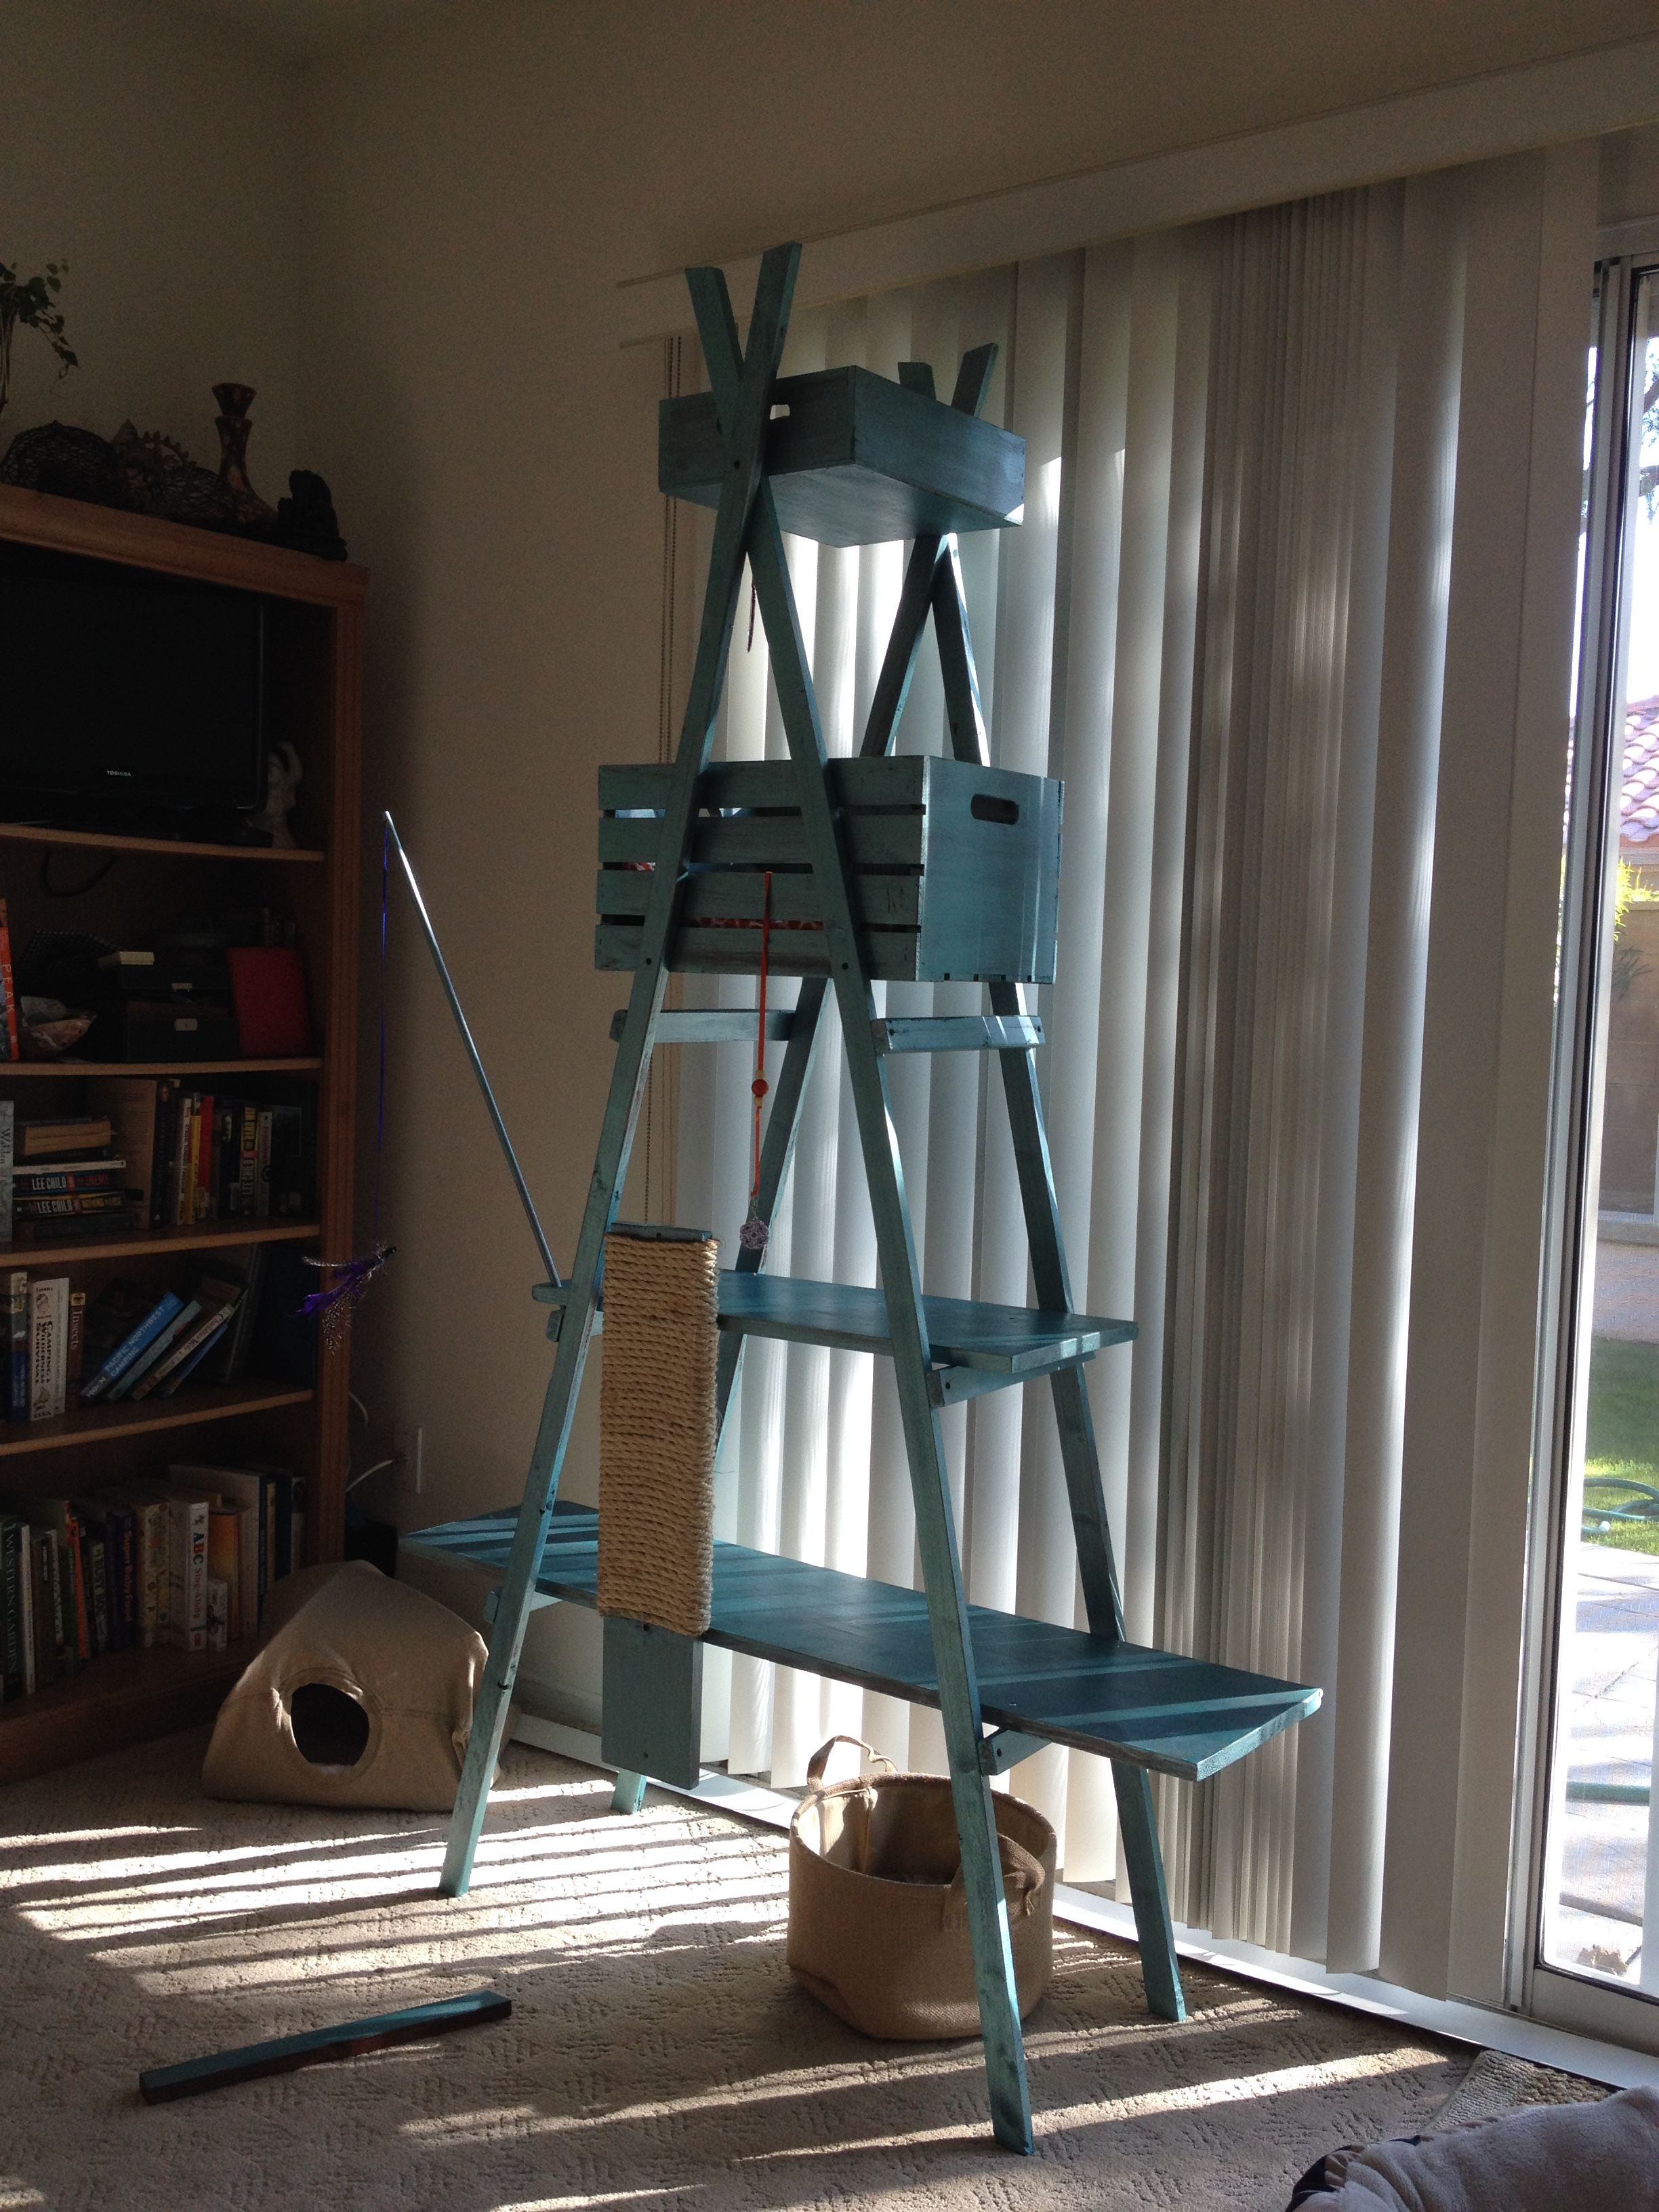 Diy Cat Climber Under 25 Ladder Style Made With